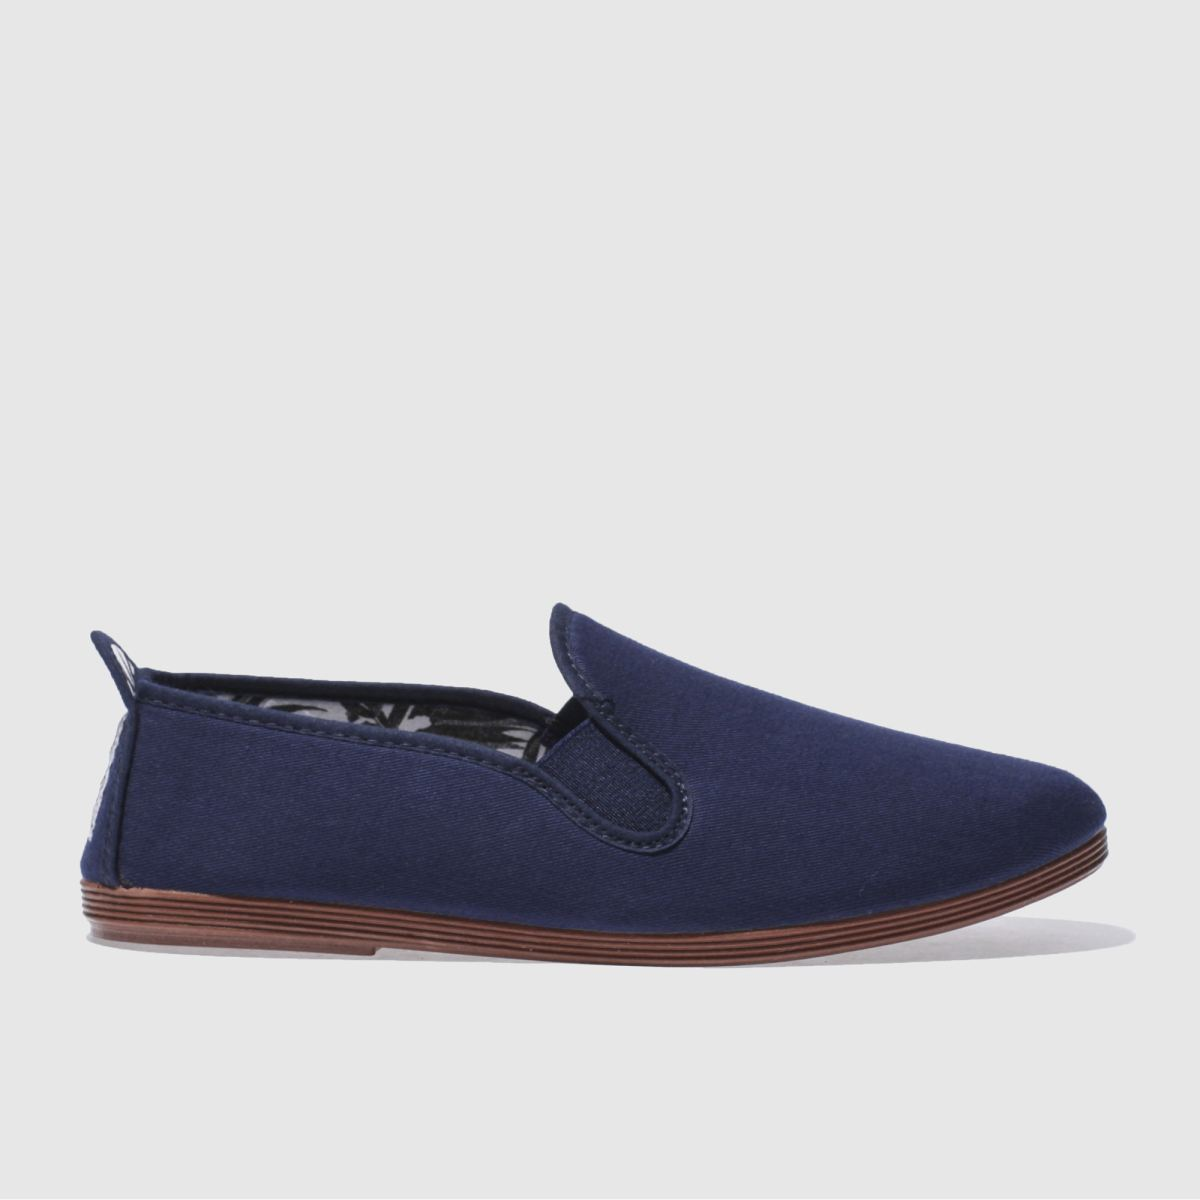 Flossy Navy Plimsoll Flat Shoes